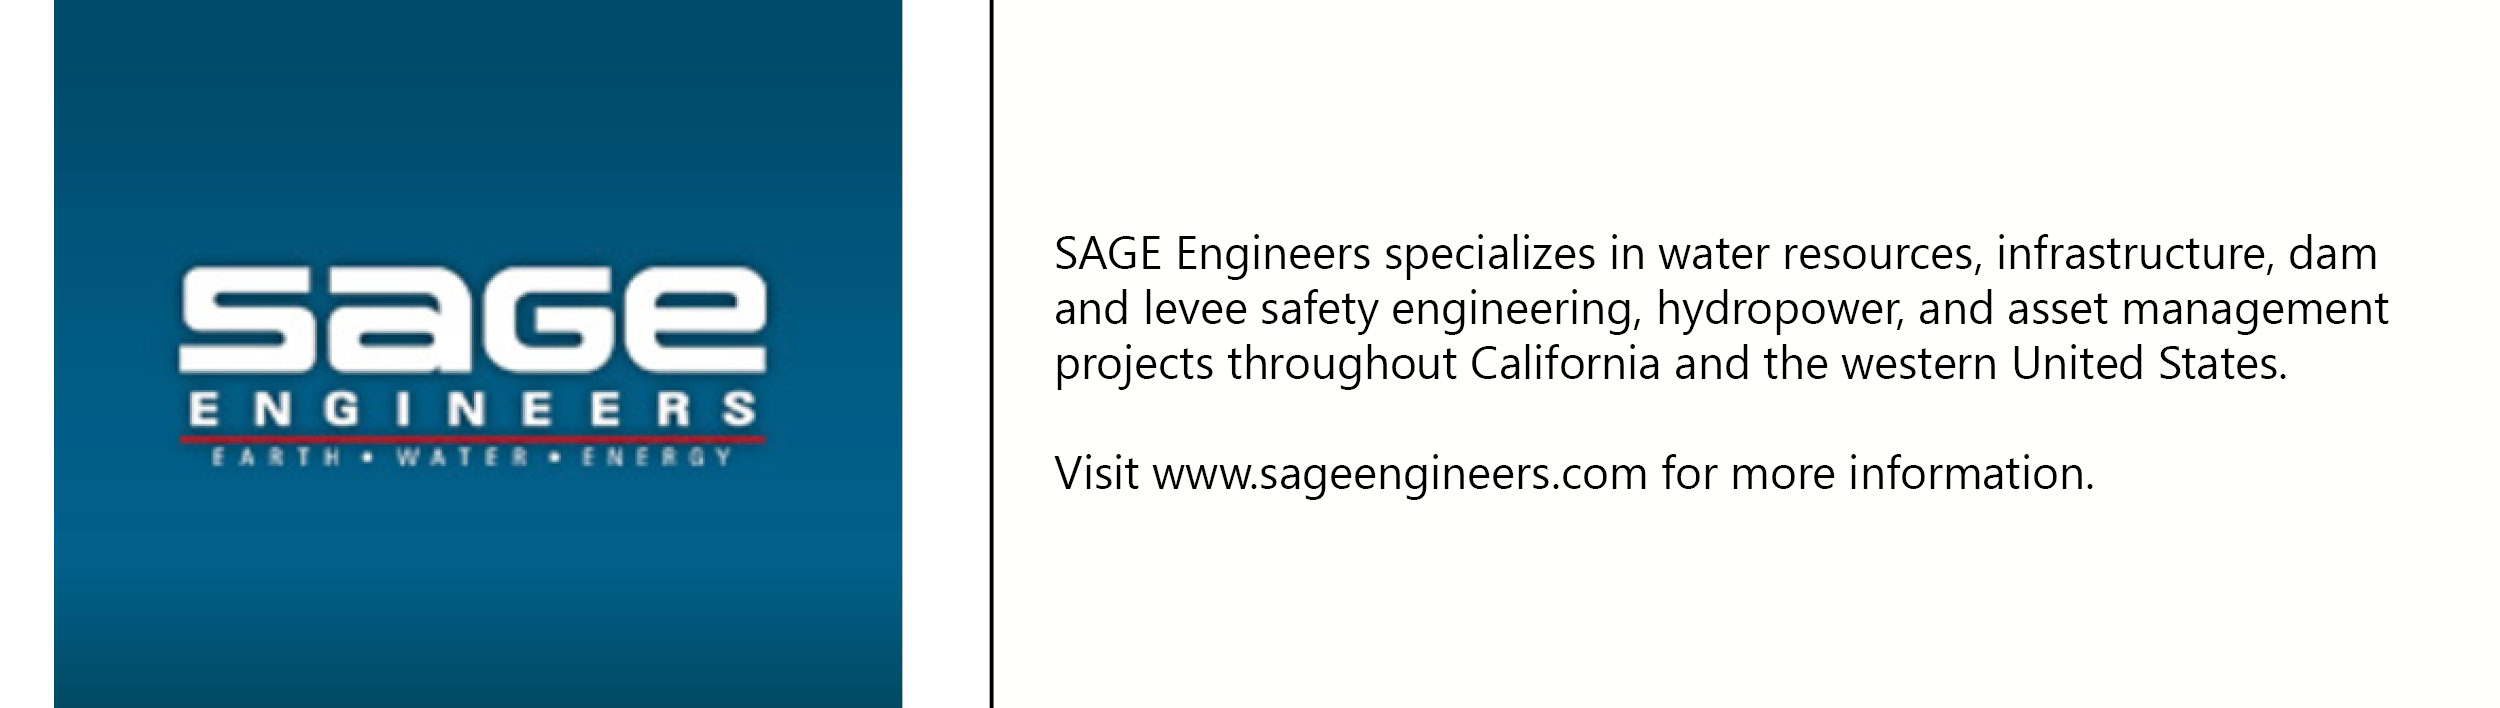 Sage Engineers logo with description of company